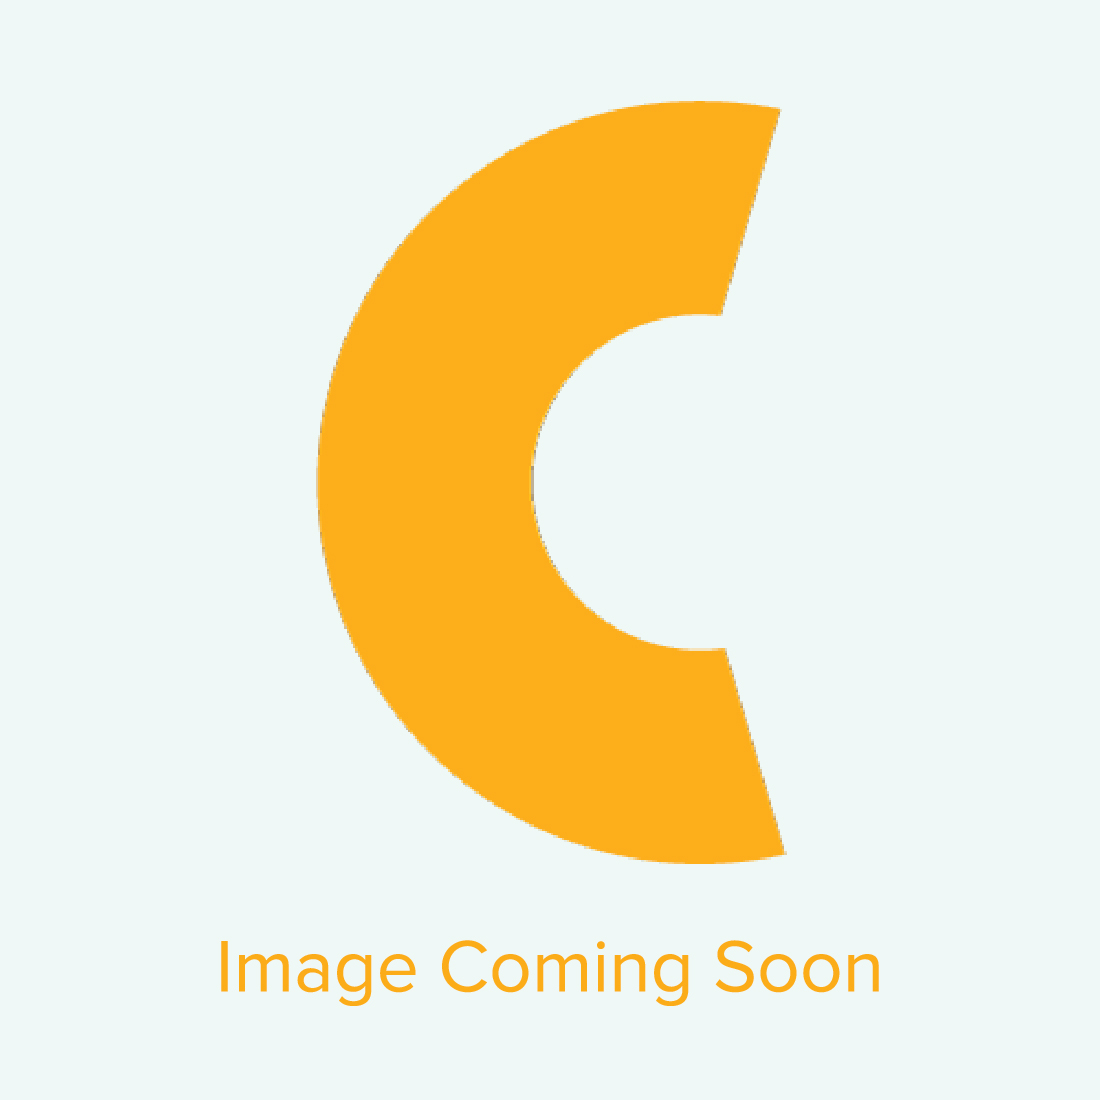 HP 64-inch Latex 570 Printer